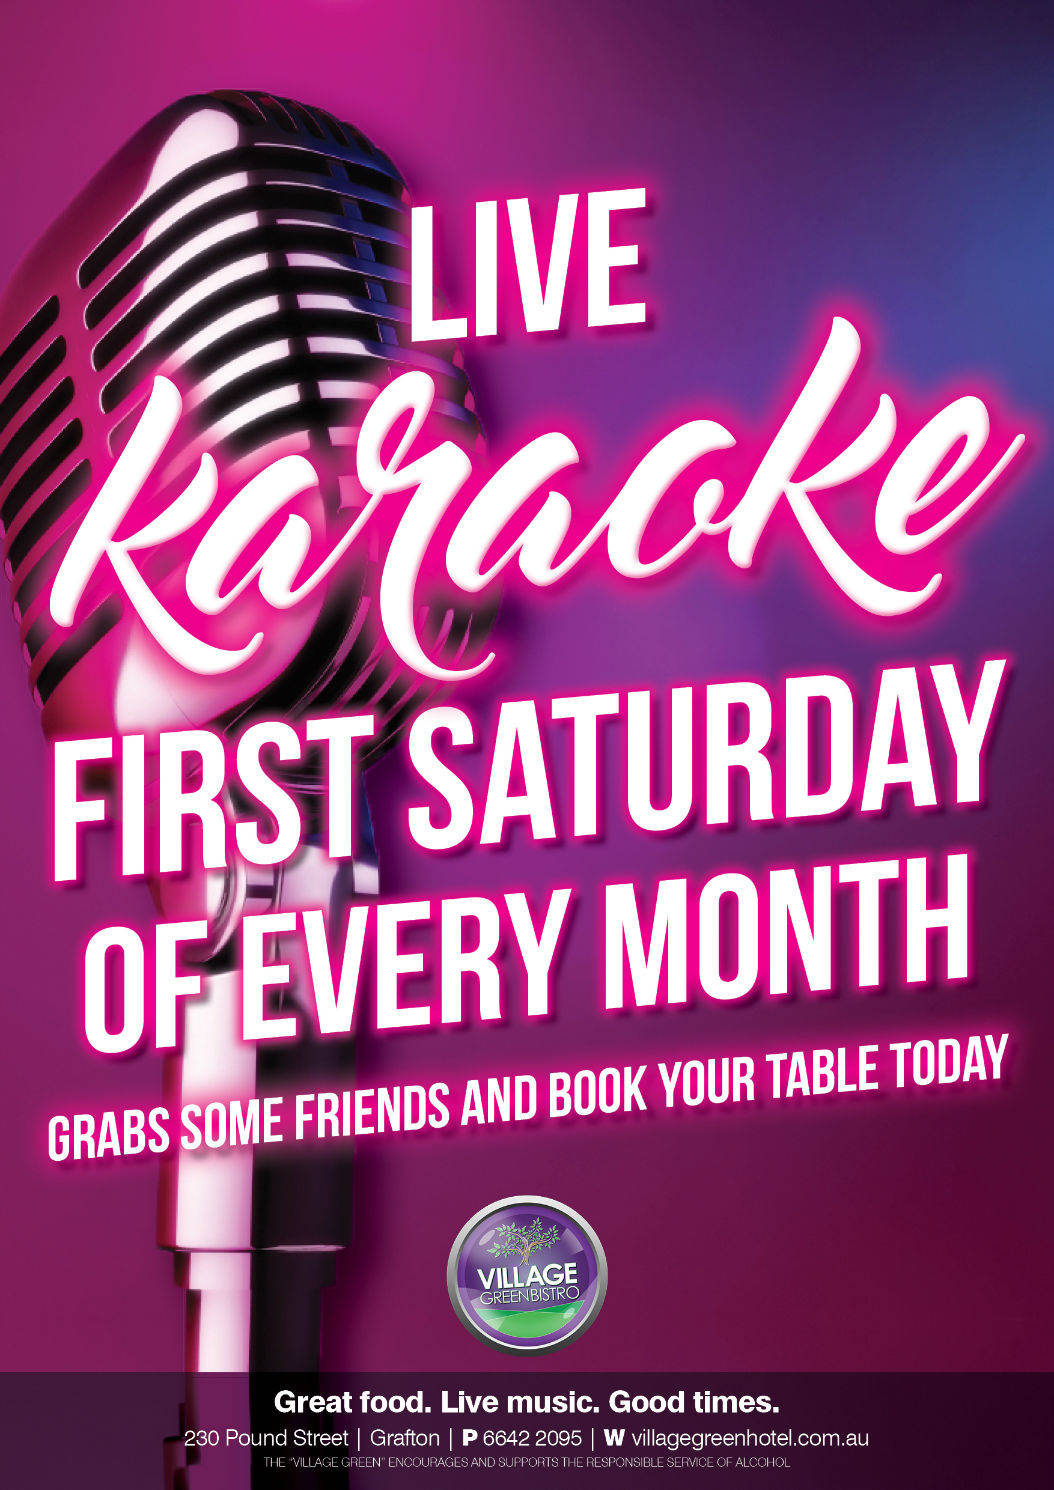 Live Karaoke First Saturday of every month